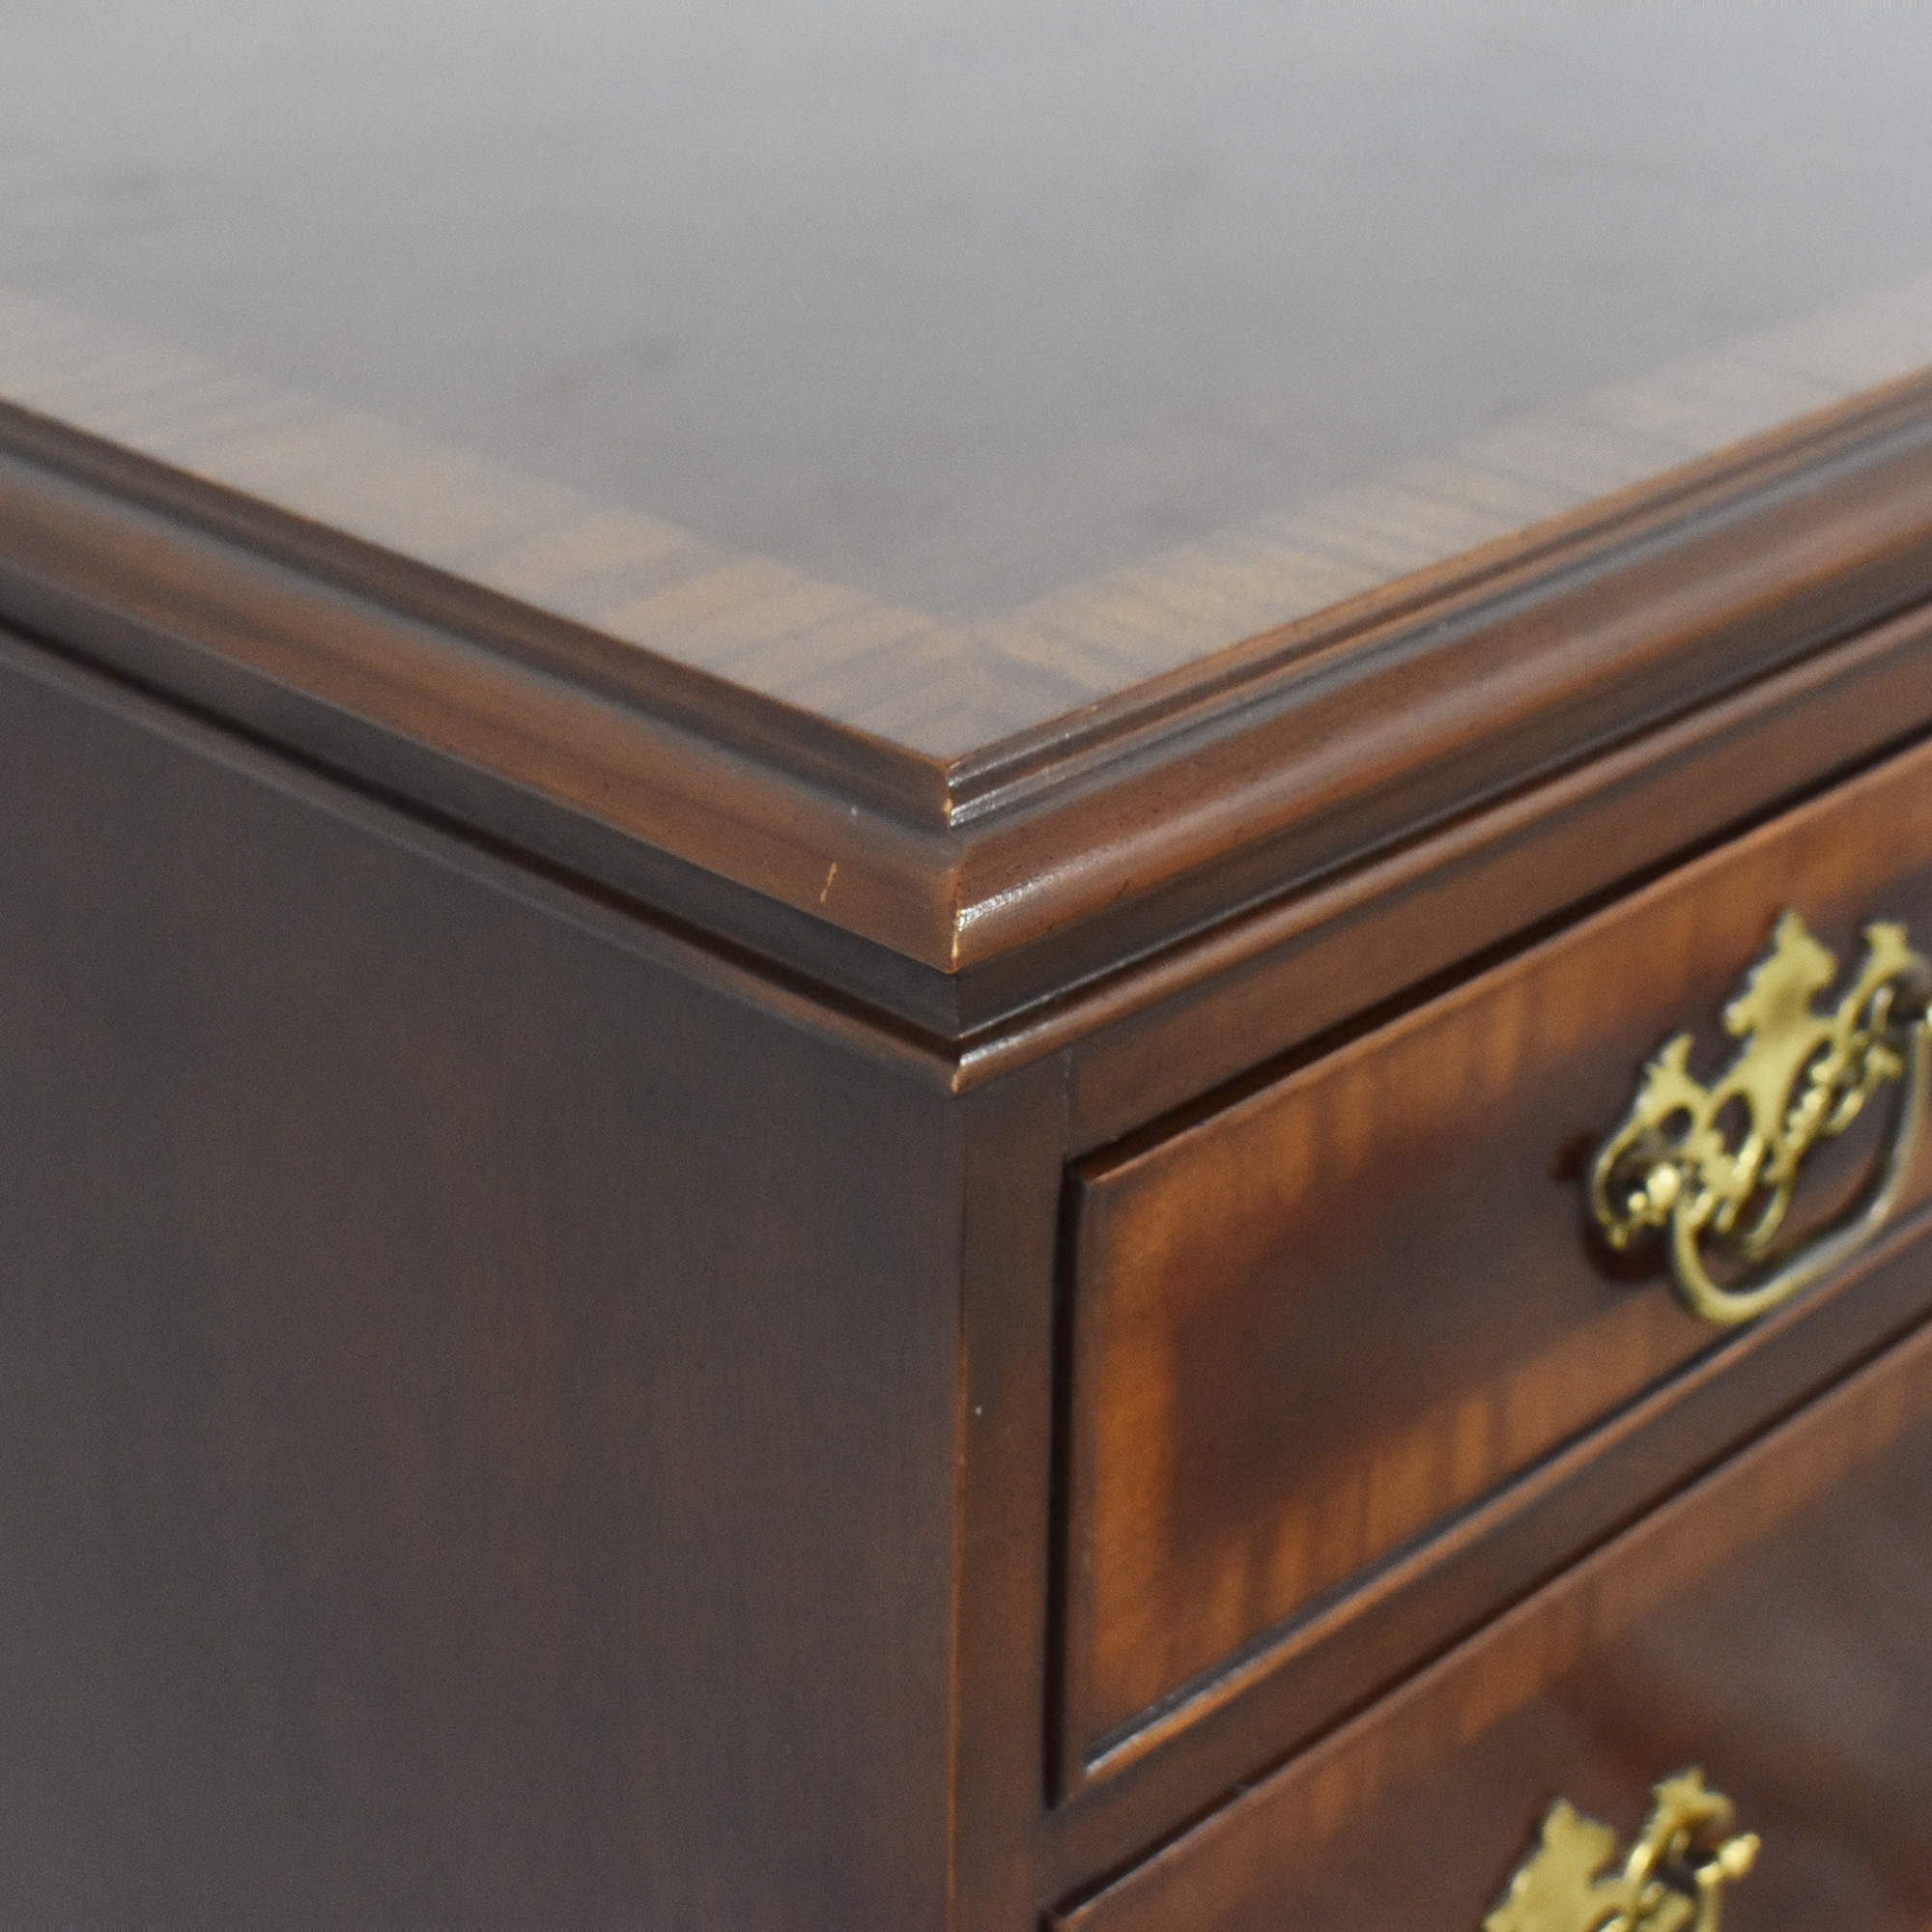 Drexel Drexel Chippendale Style Dresser coupon